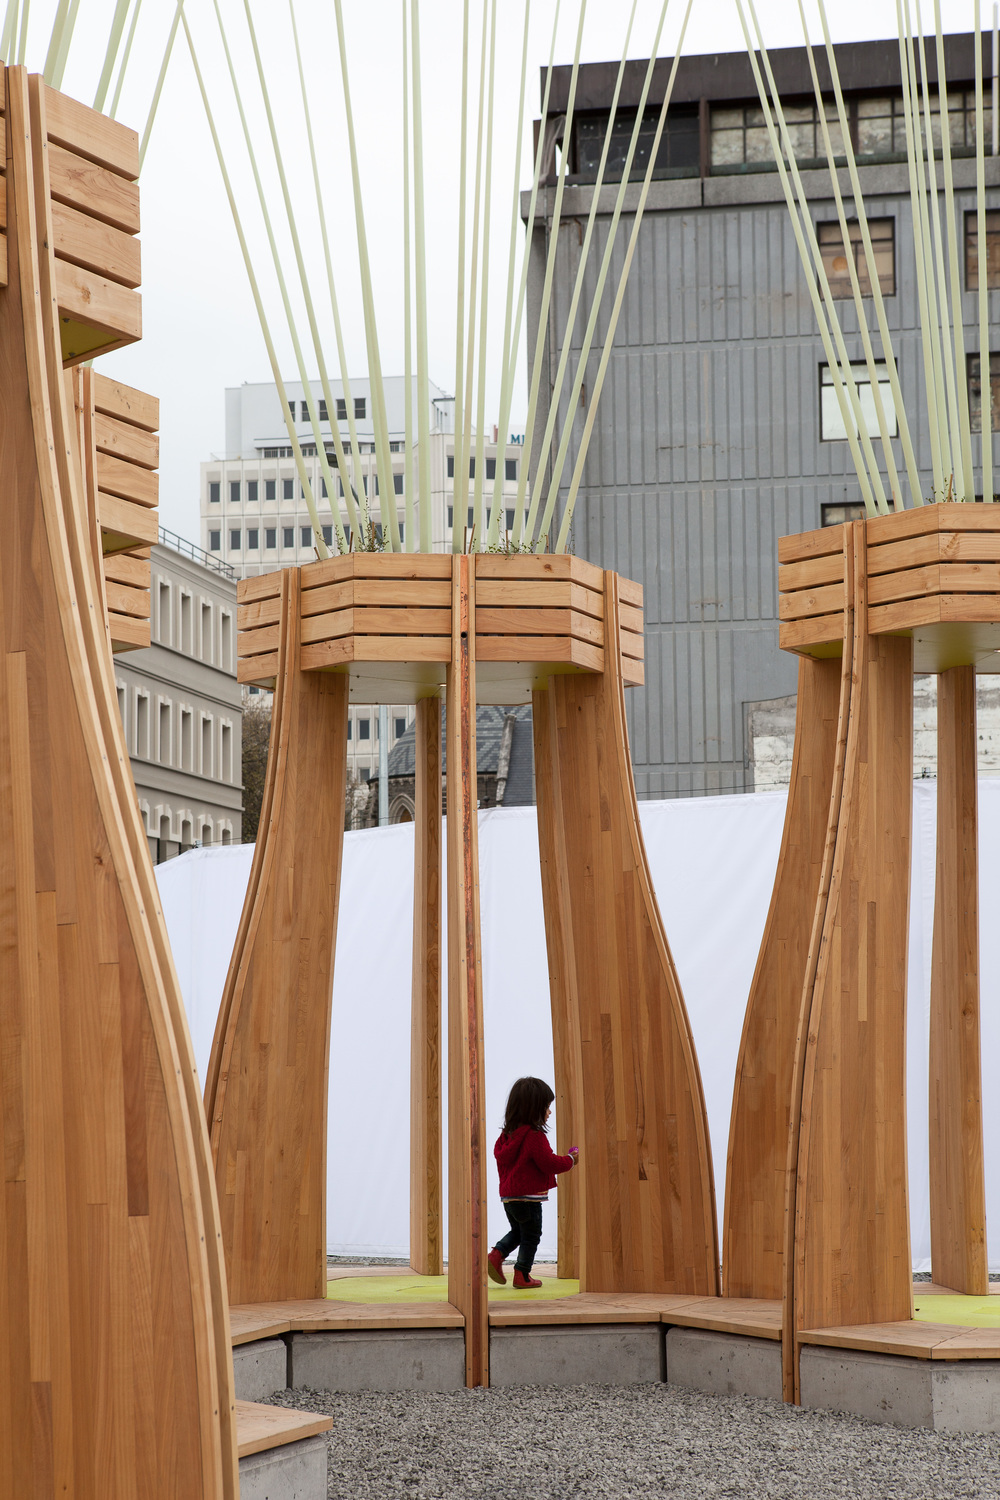 Julia_Morison_'Tree_Houses_For_Swamp_Dwellers'_2013_Photo_BridgitAnderson_CourtesyofSCAPEPublicArt6.jpg